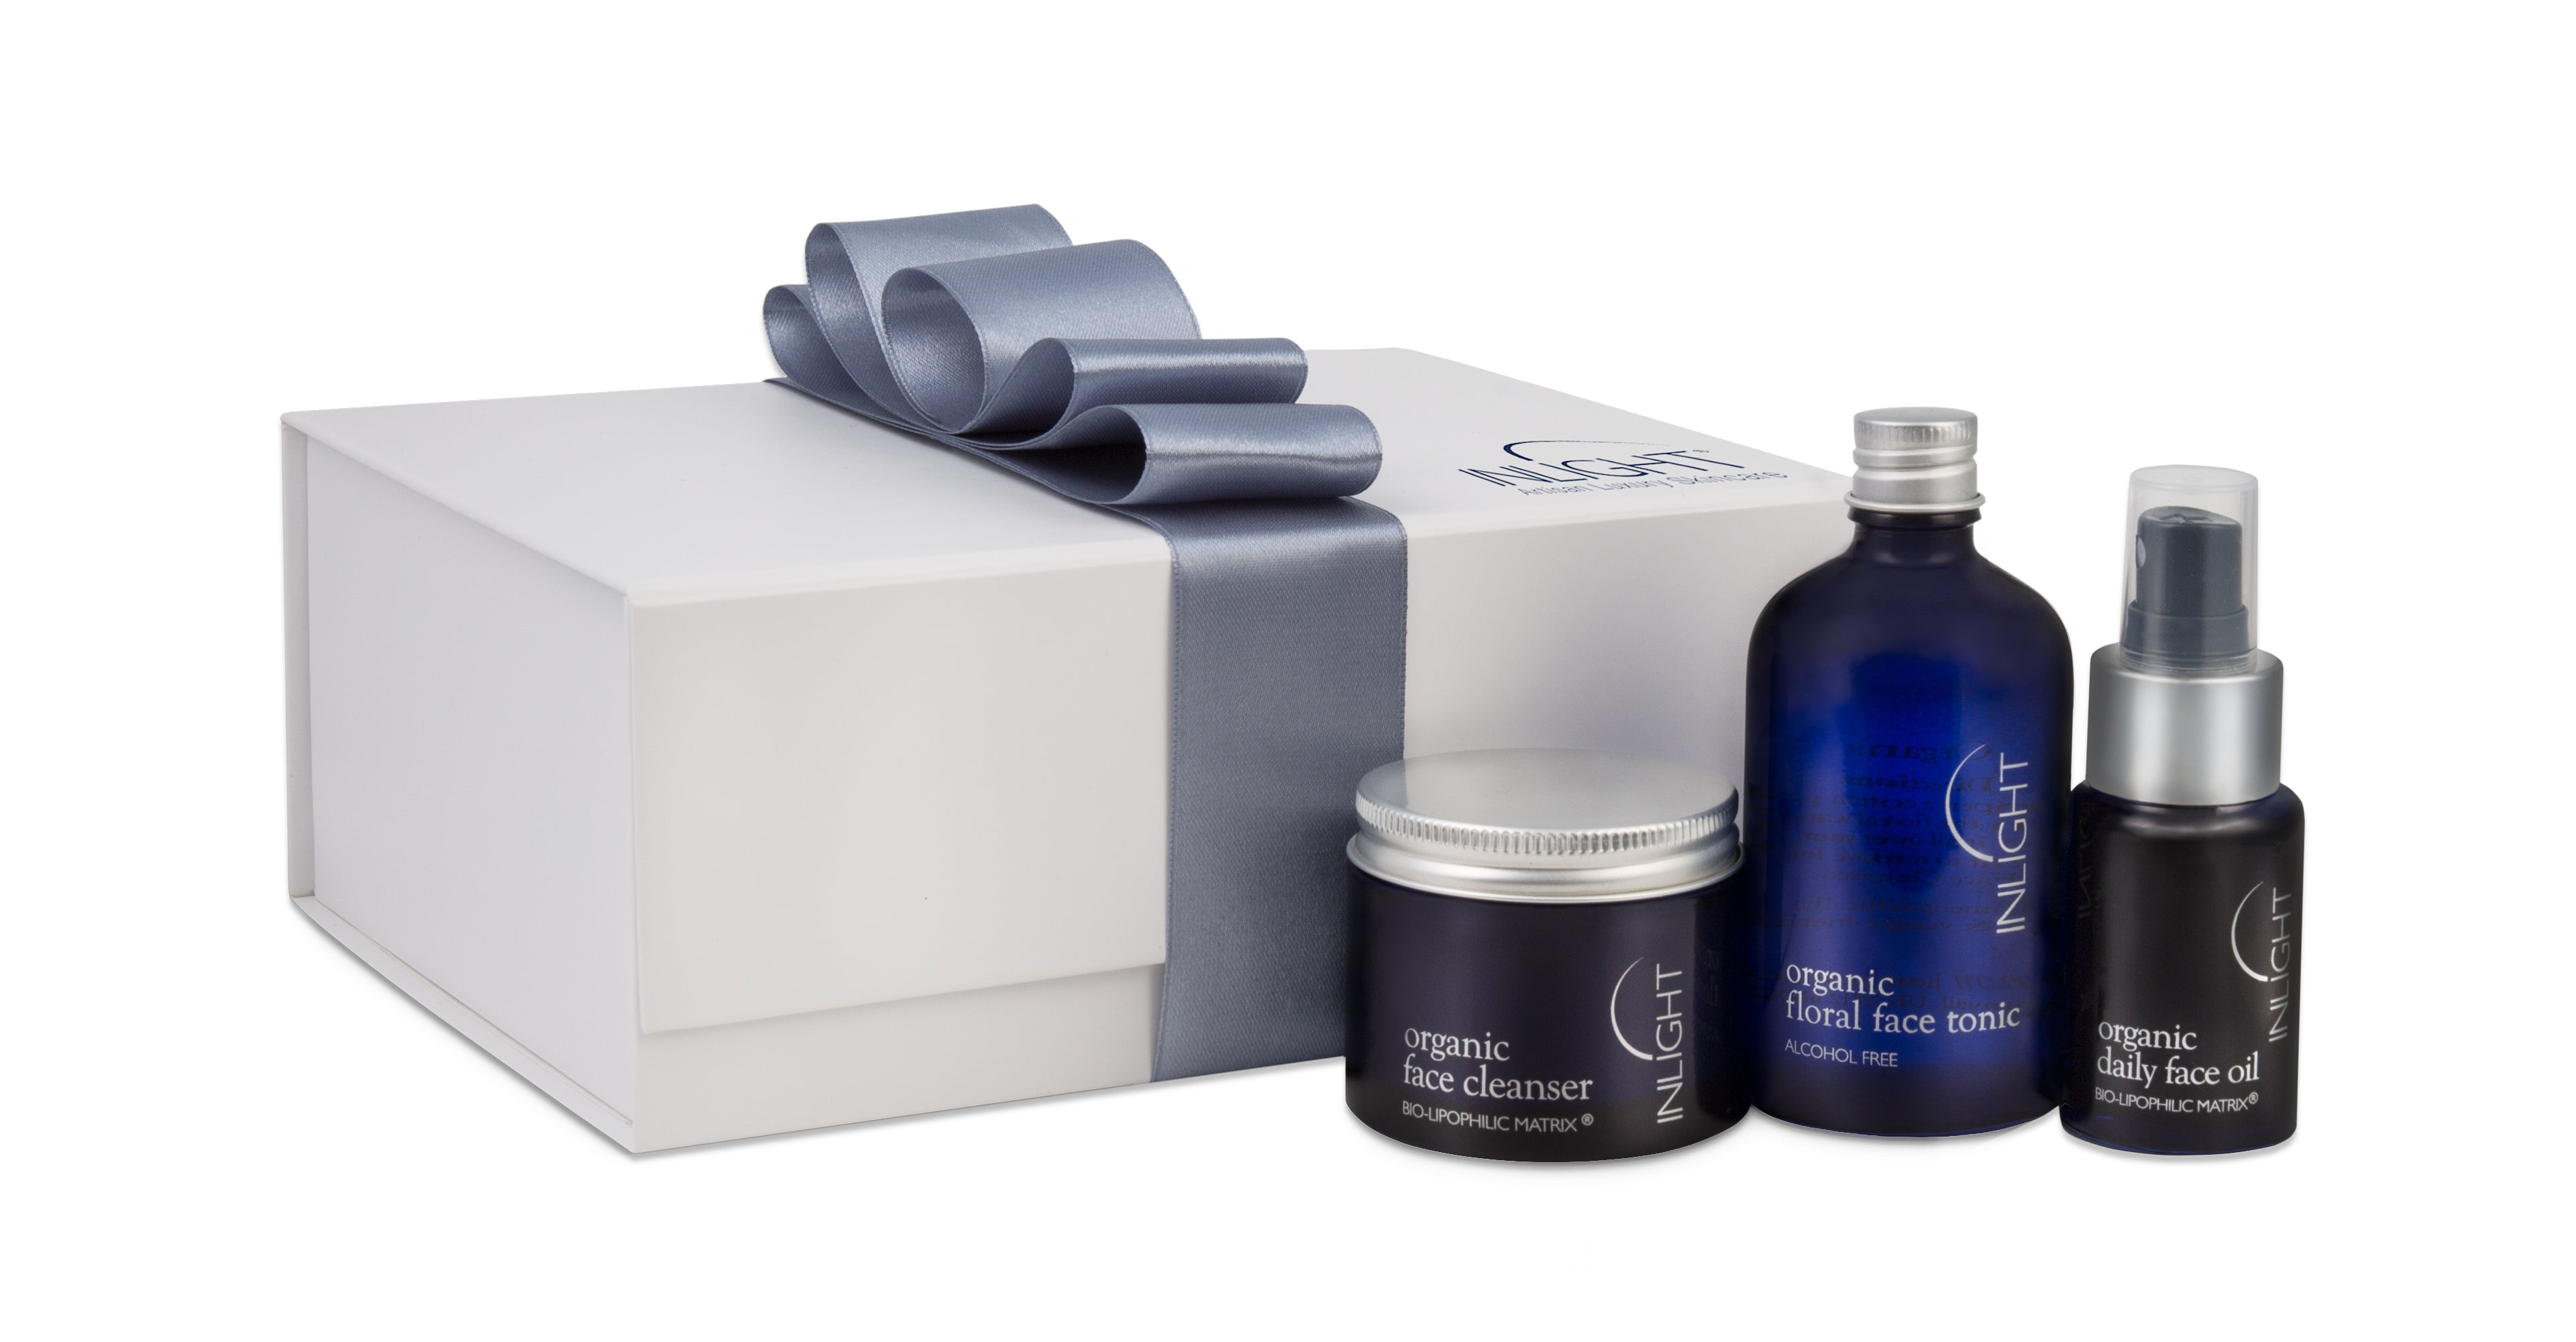 Inlight's Daily Essentials gift set